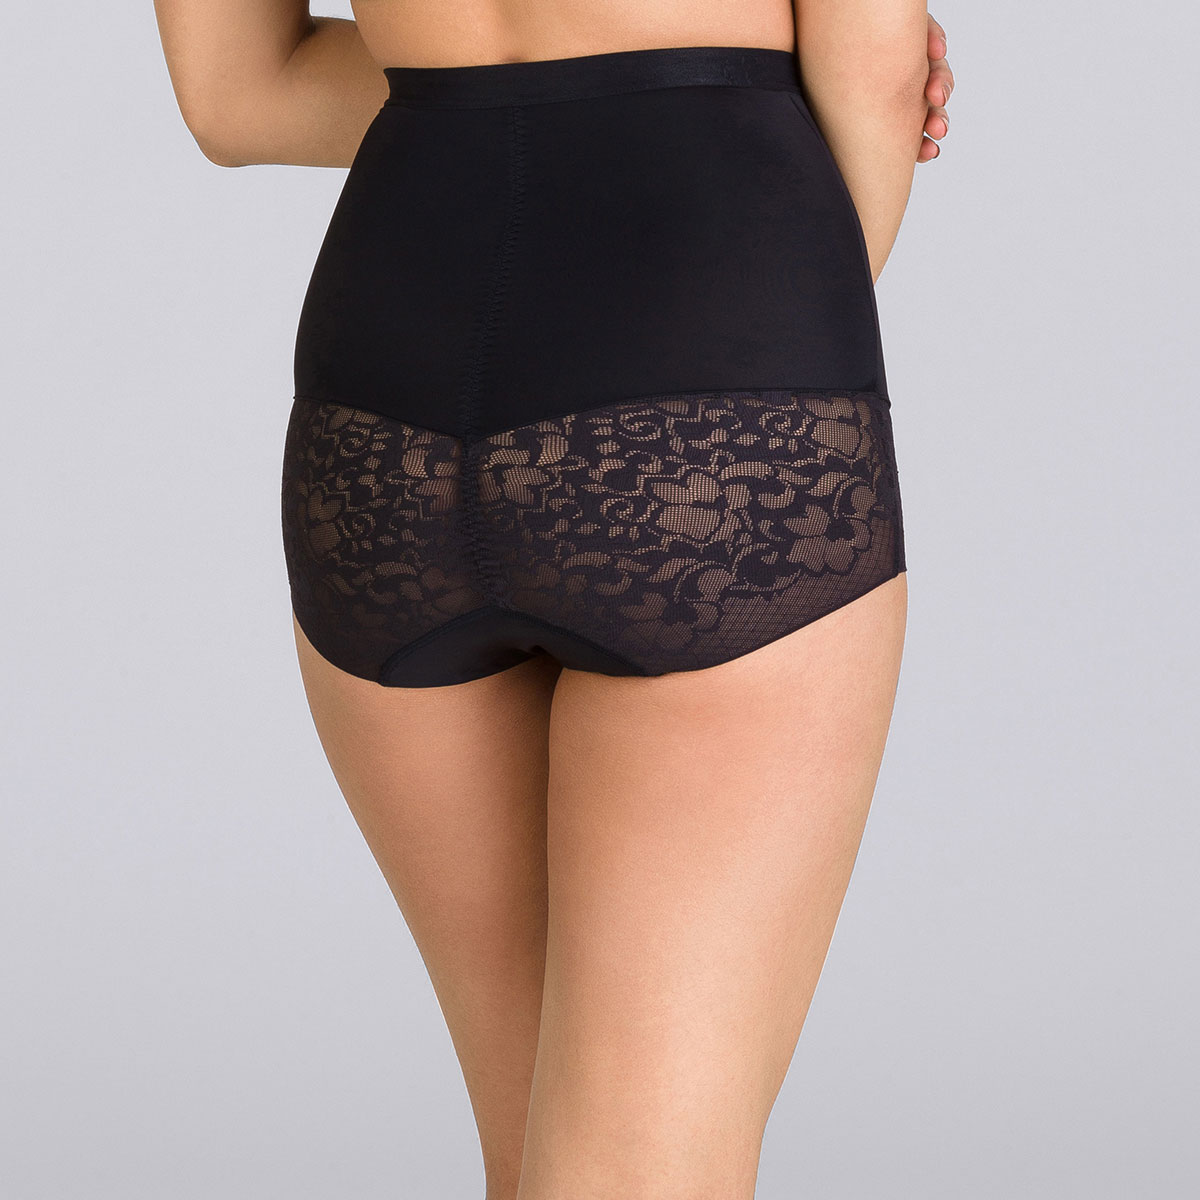 Black high-waisted girdle - Expert in Silhouette-PLAYTEX